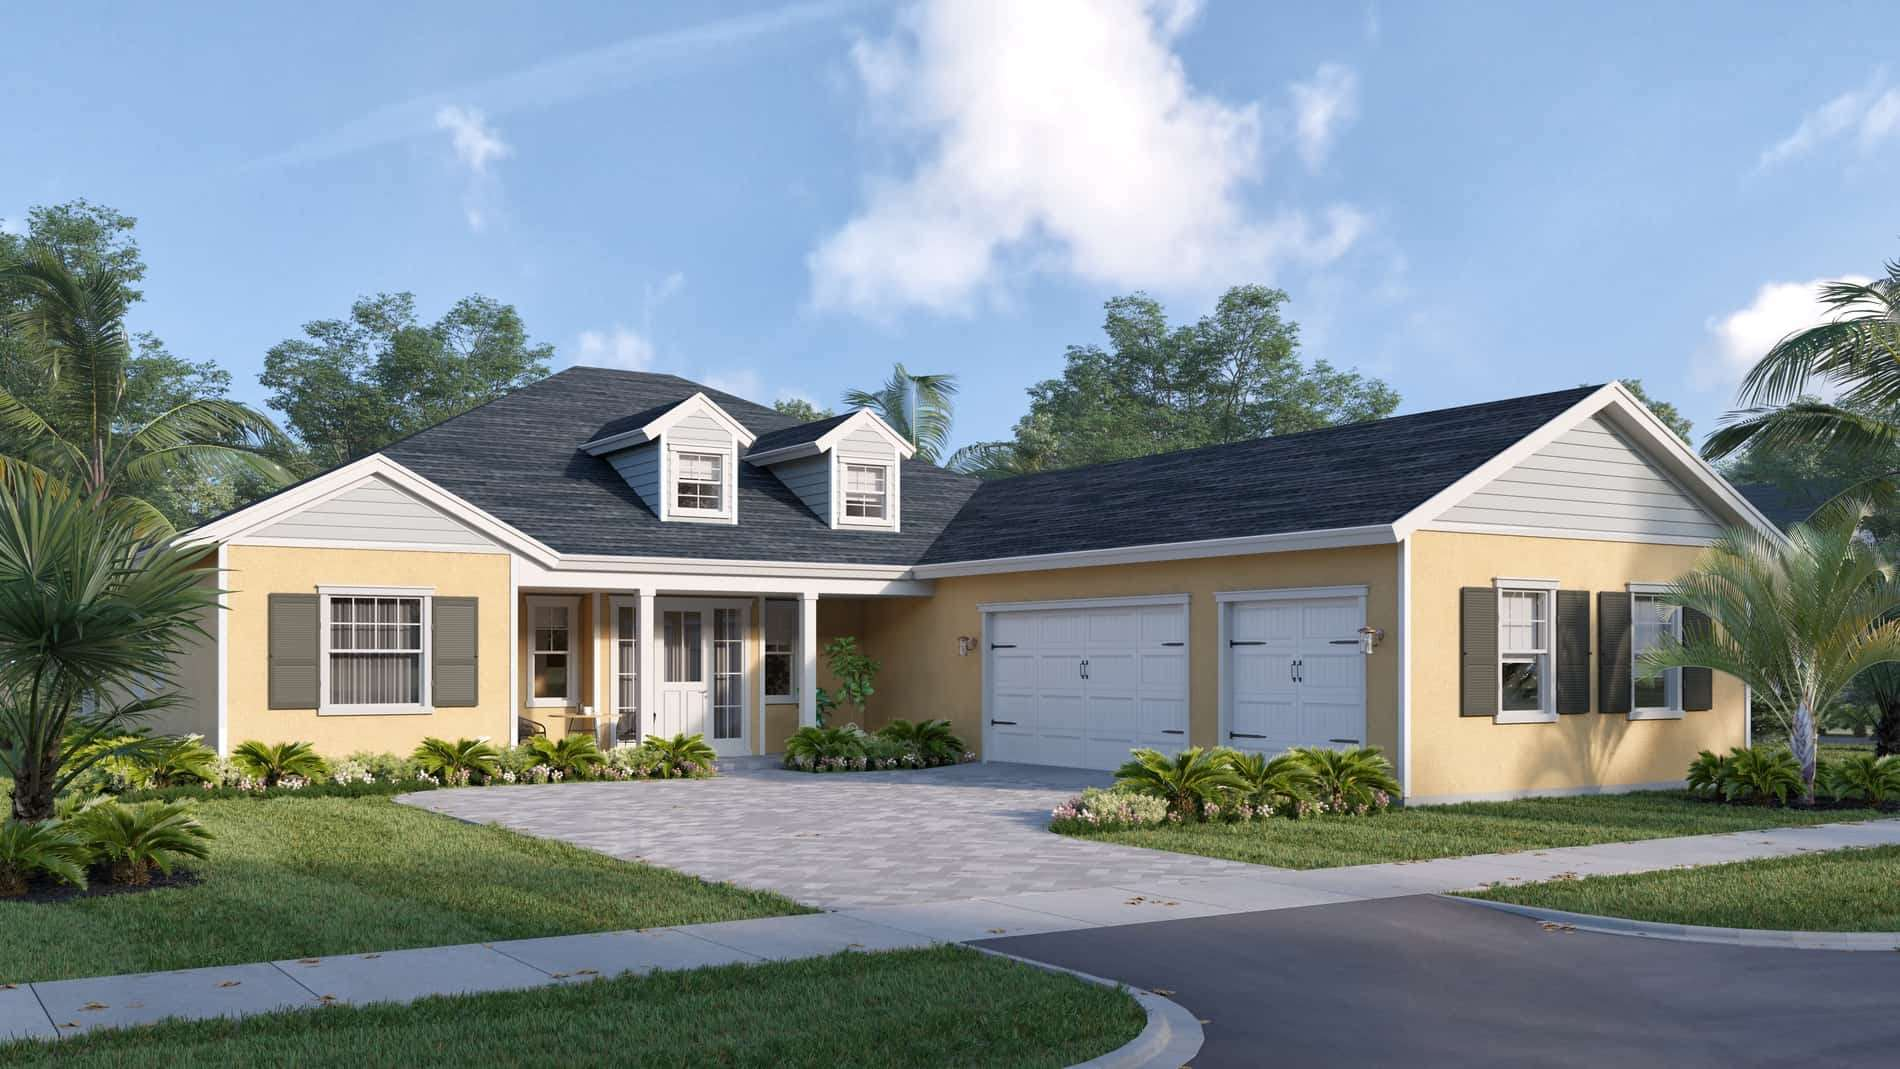 Florida Lifestyle Homes Introduces New Design At Babcock Ranch Florida Lifestyle Homes